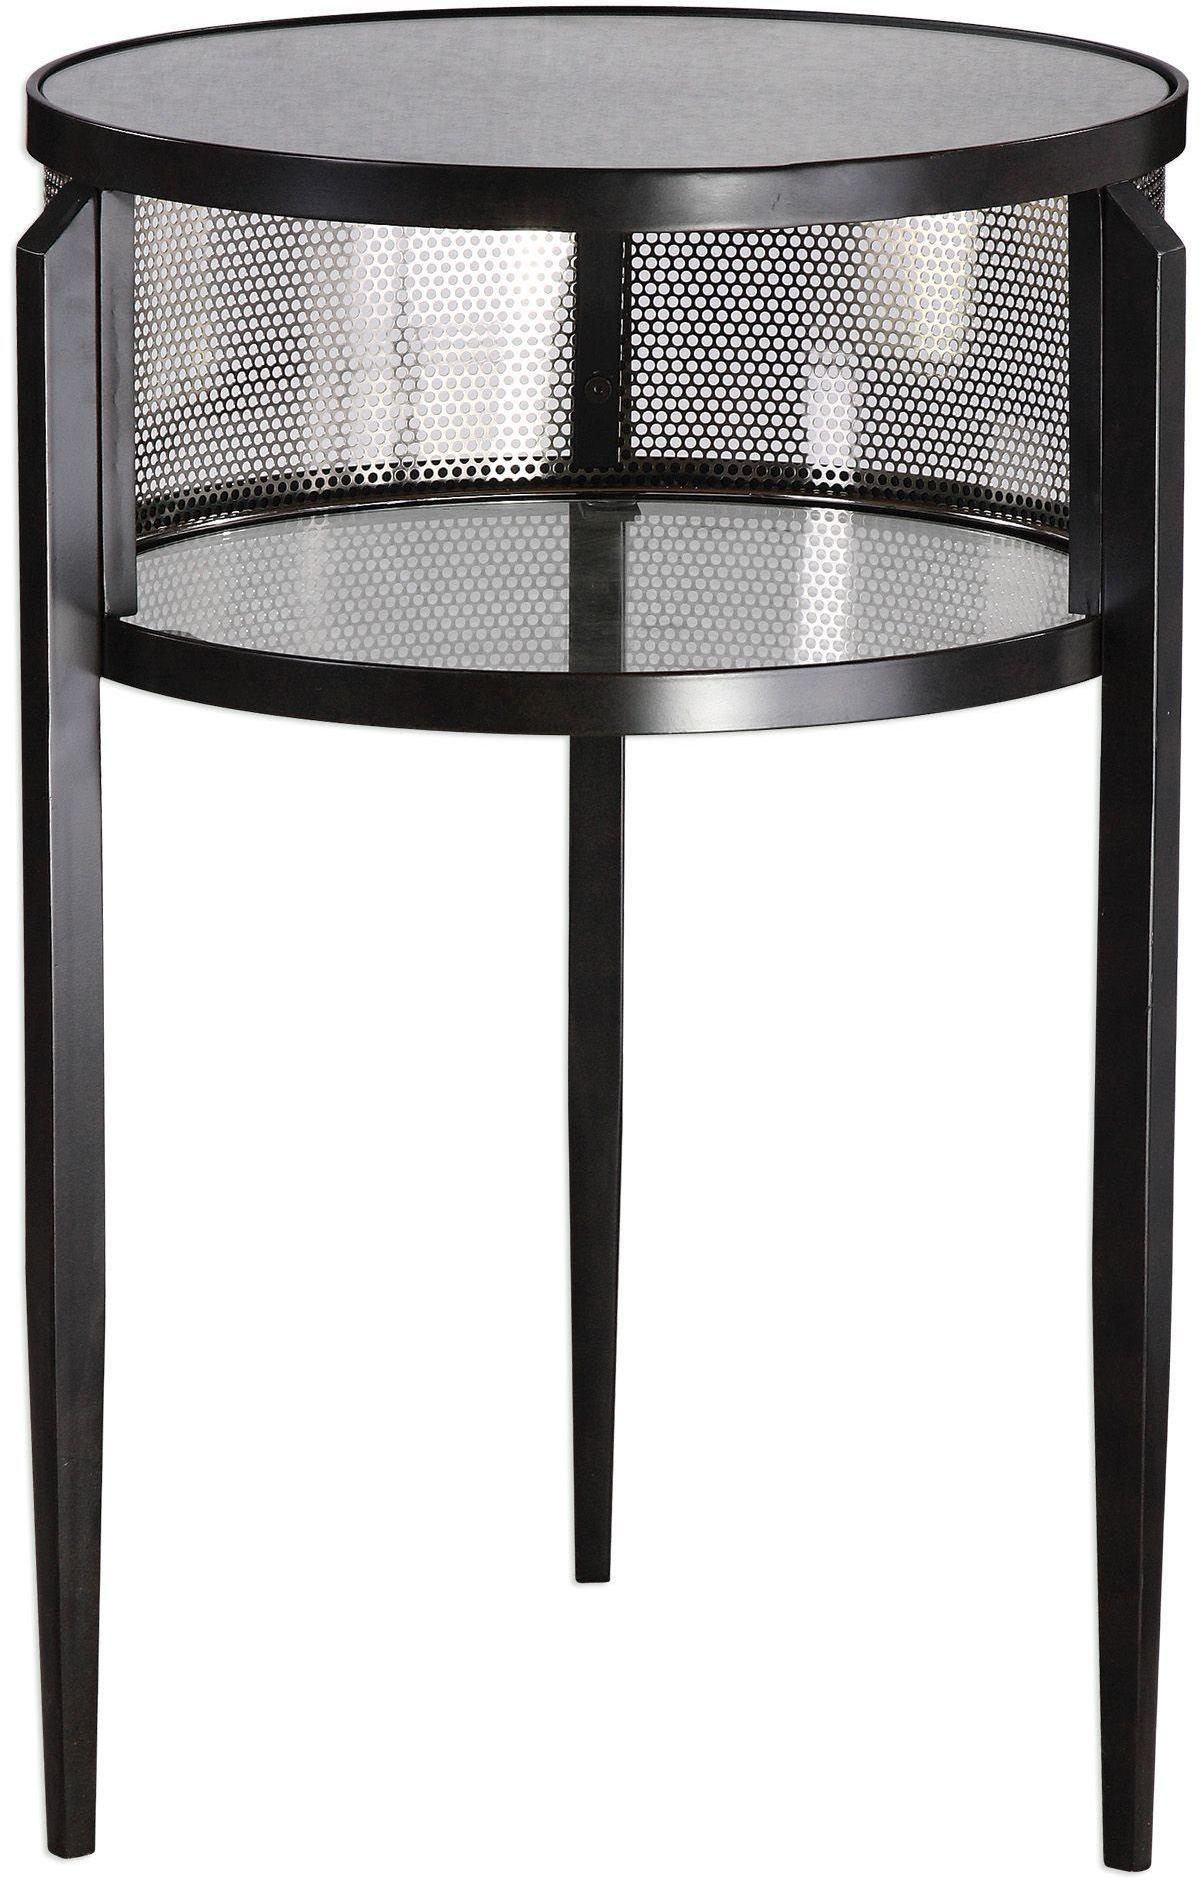 this drum style accent table finished aged black iron with storage slim tapered legs open space enhanced perforated backing plated brown linen tablecloth decorative lamps that run